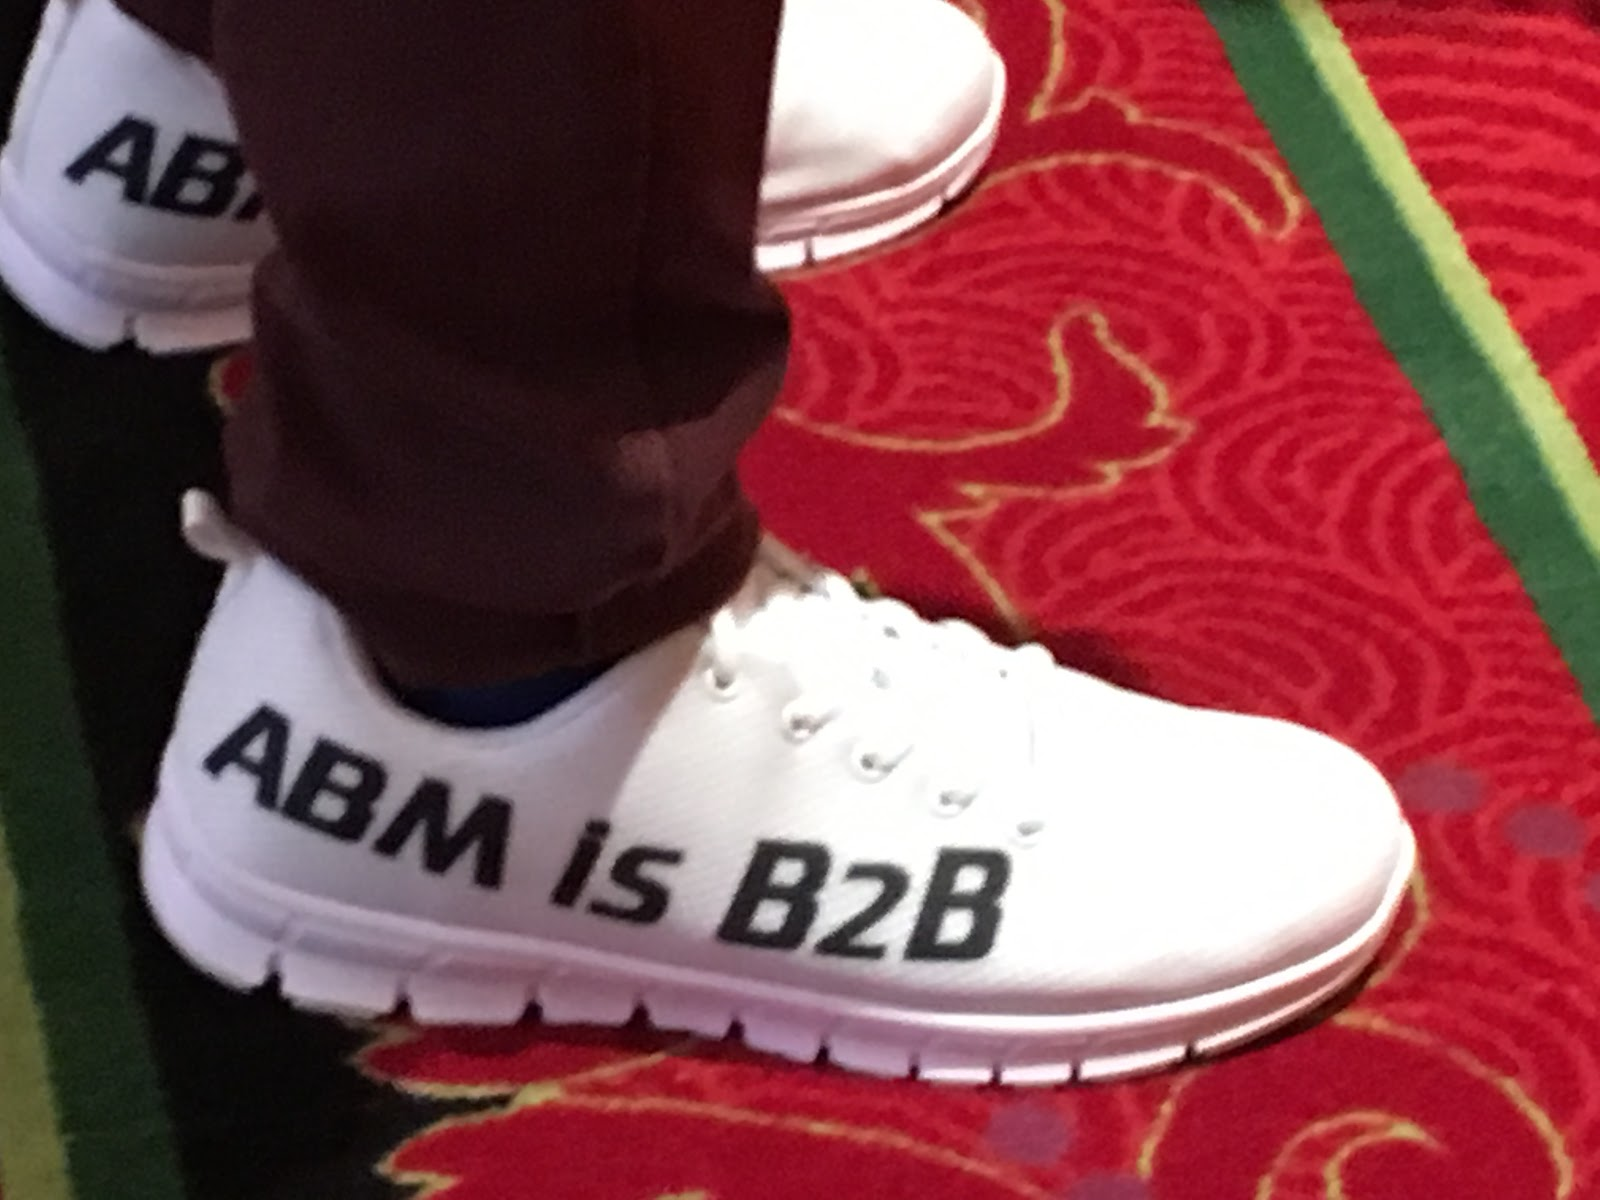 ABM is B2B Shoes